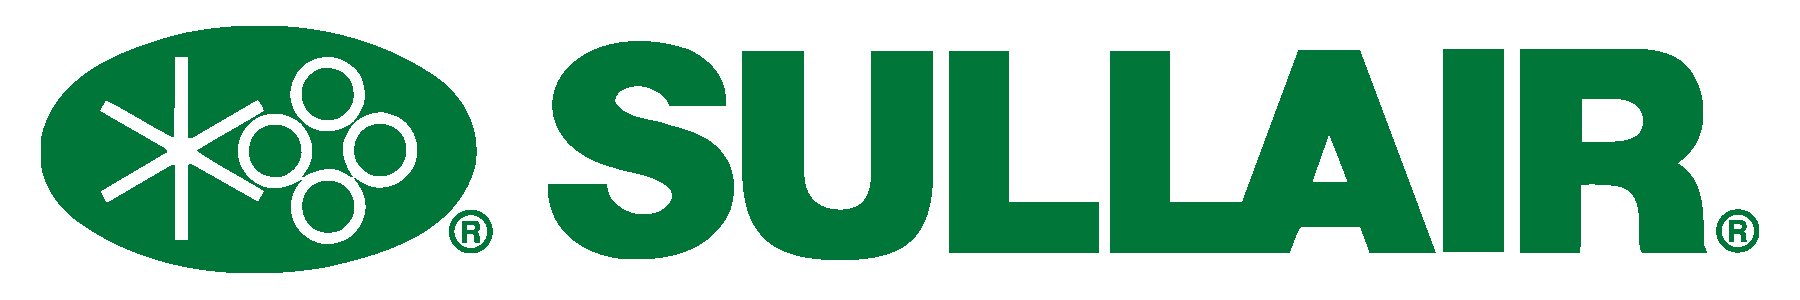 LOGO_Sullair_Horizontal_Green copy